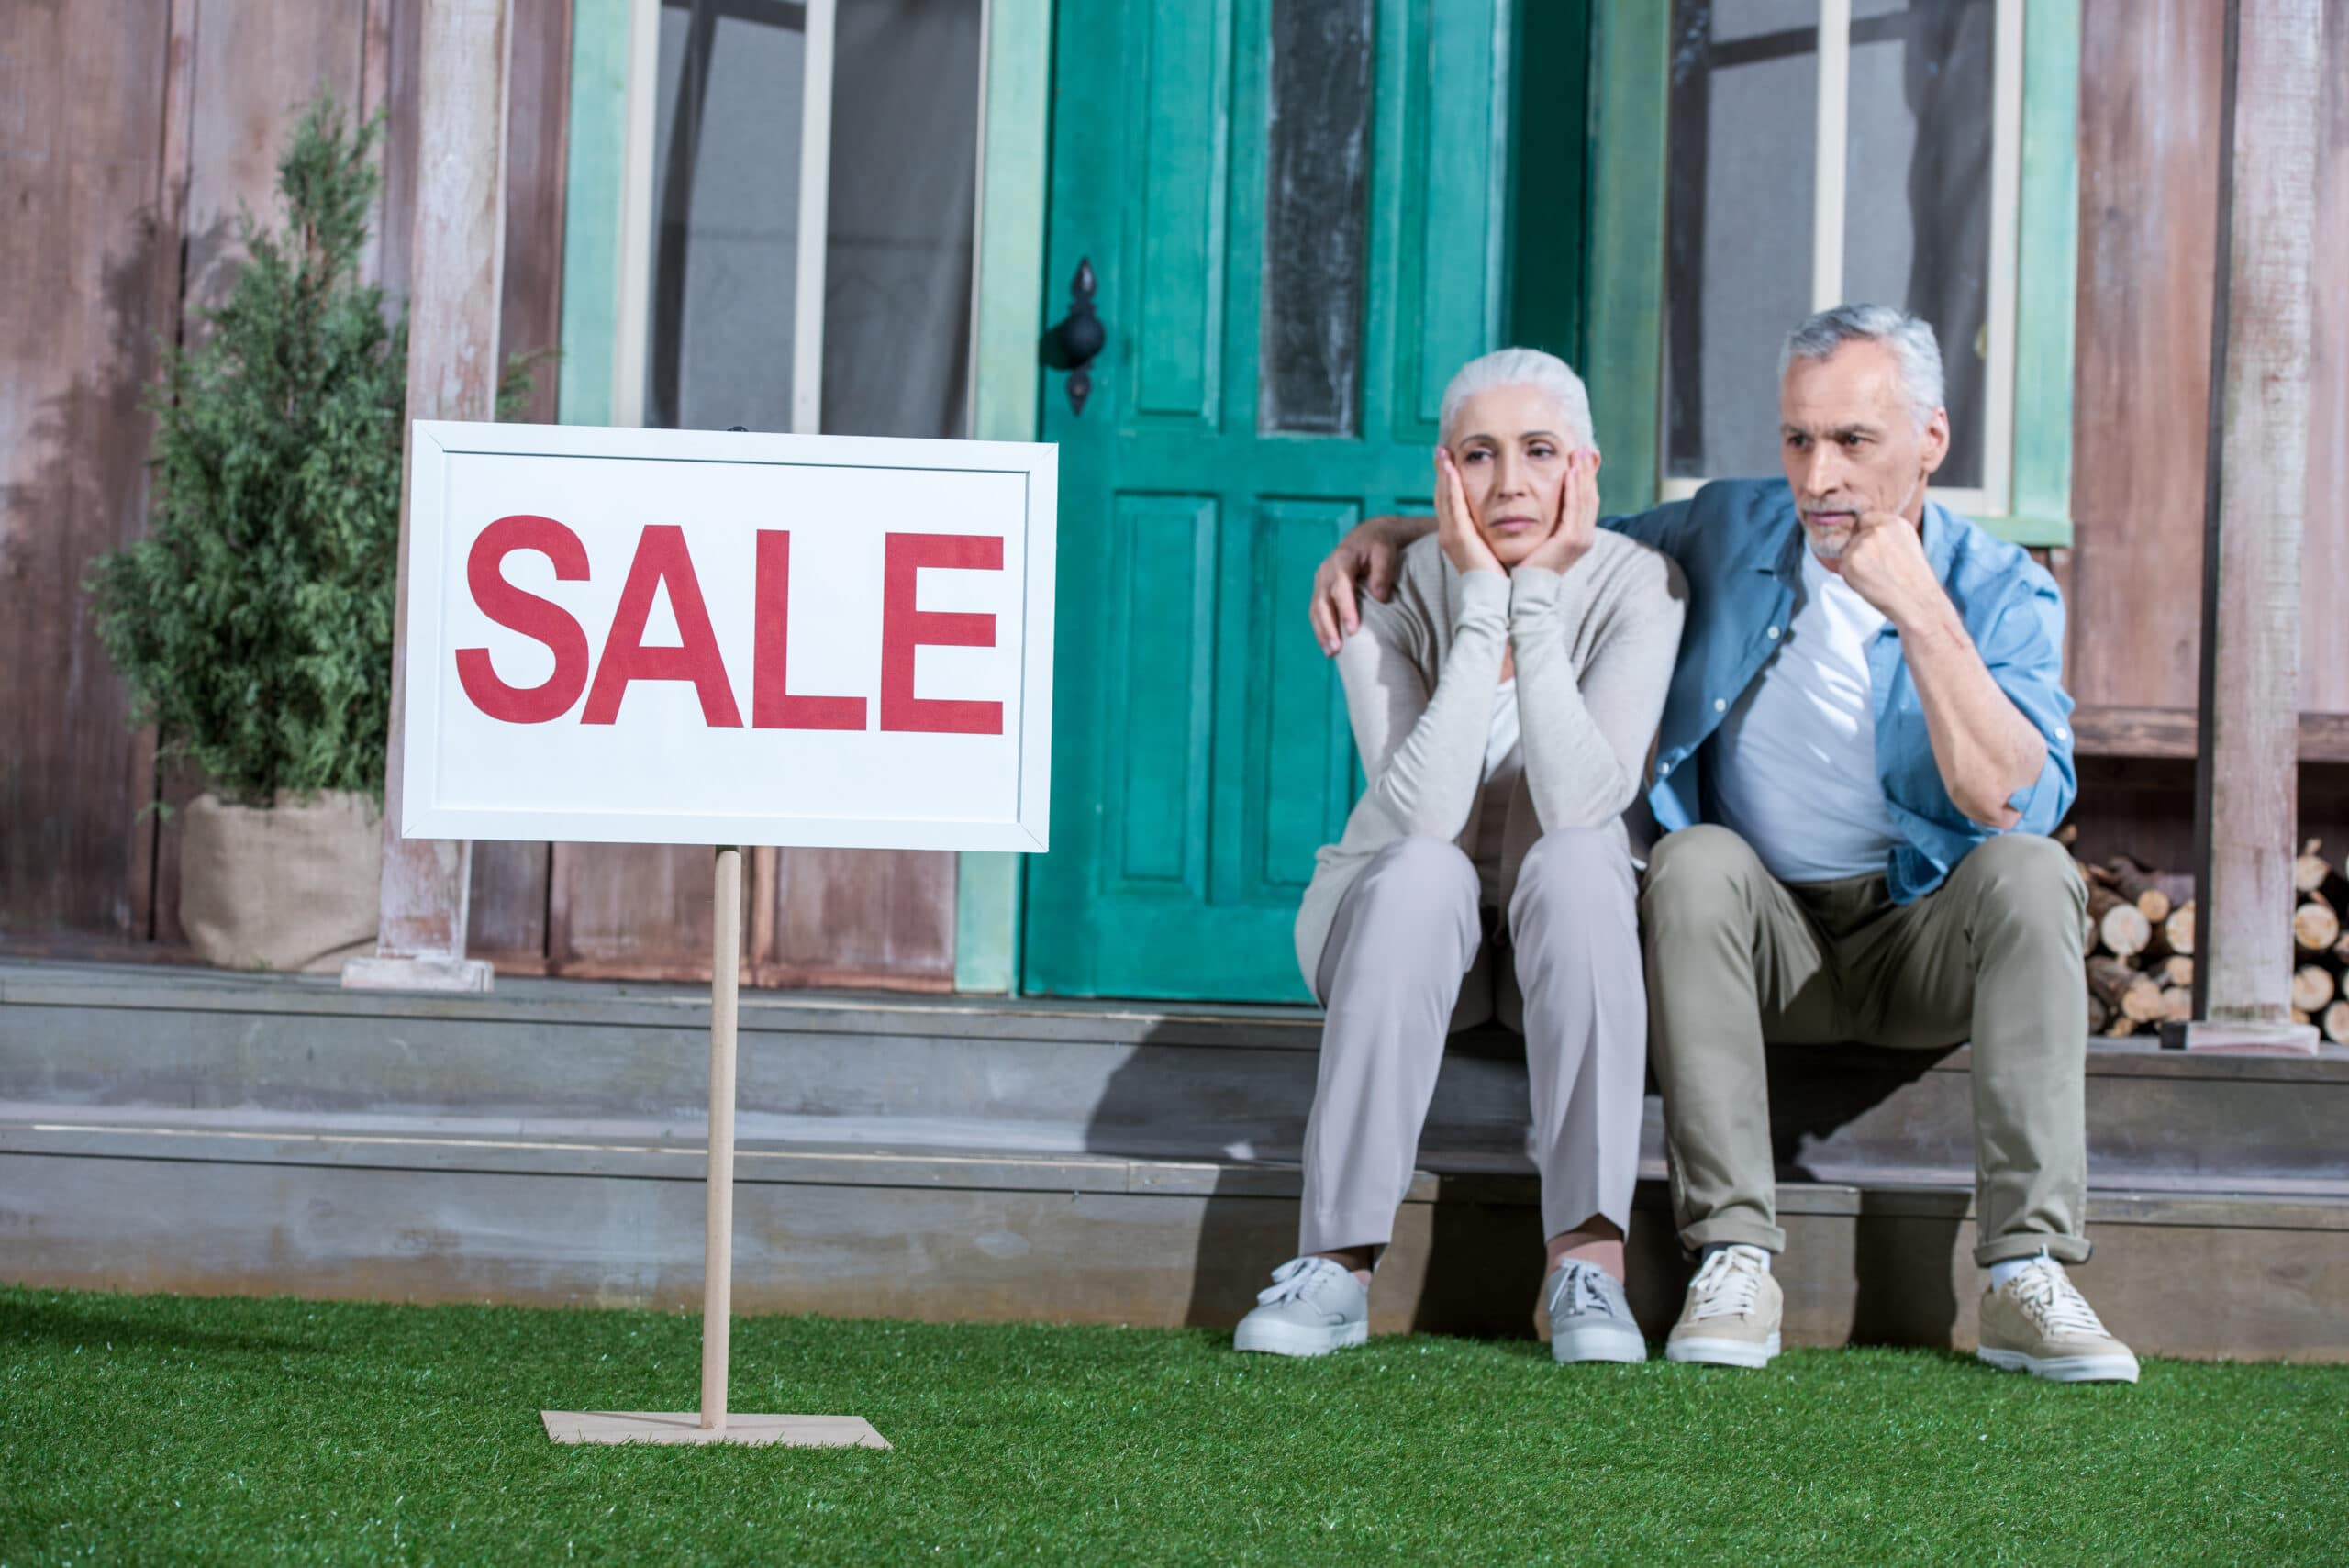 For sale by owner: Do I even need a Realtor?